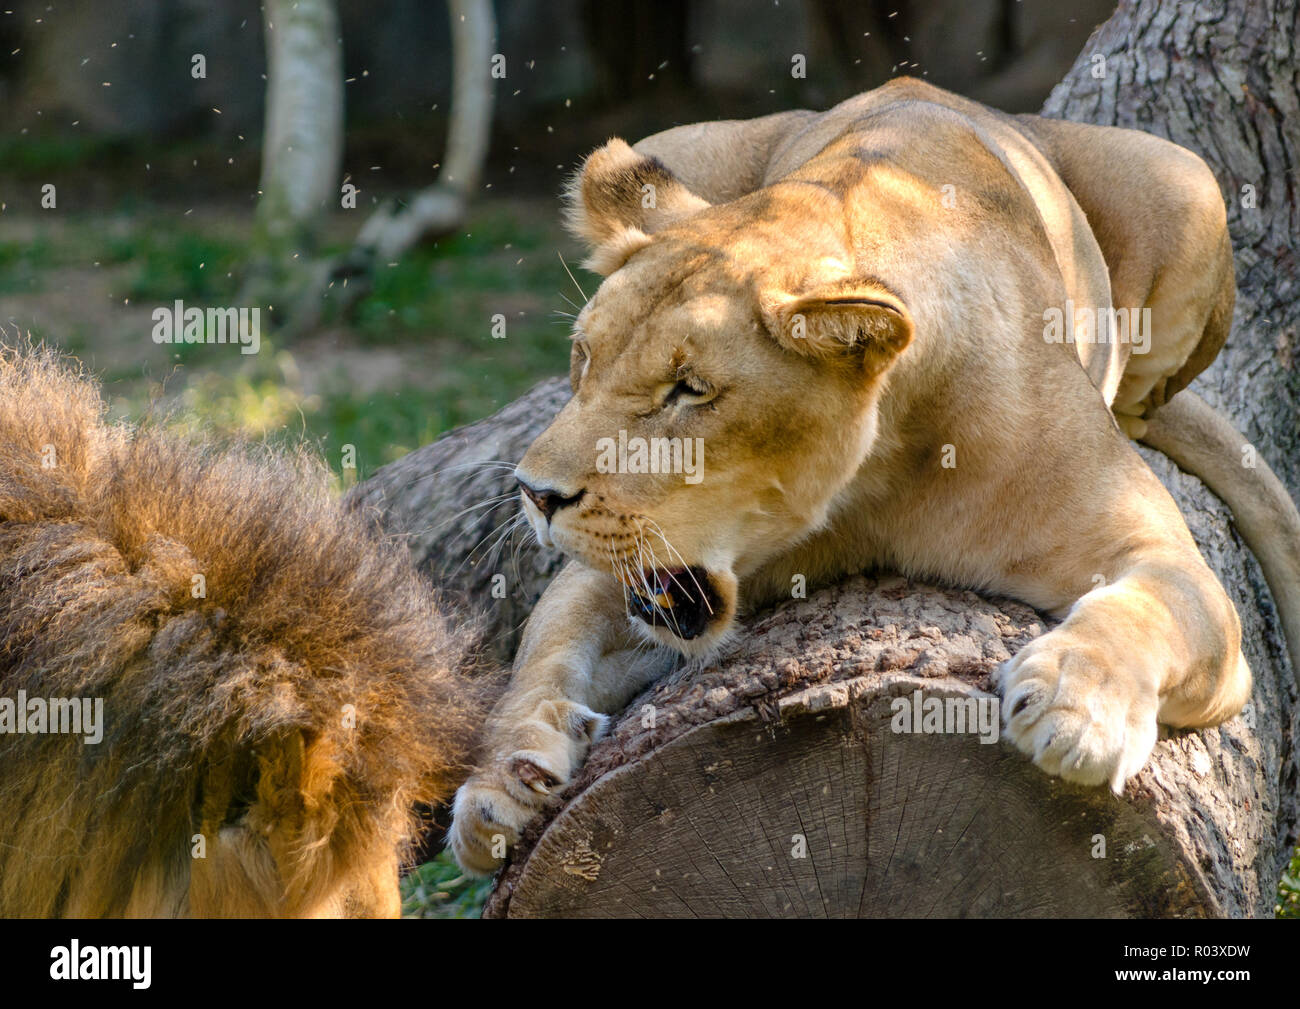 An African lioness (Panthera Leo) scratches a log and snarls as her mate approaches at the Memphis Zoo, September 8, 2015, in Memphis, Tennessee. - Stock Image